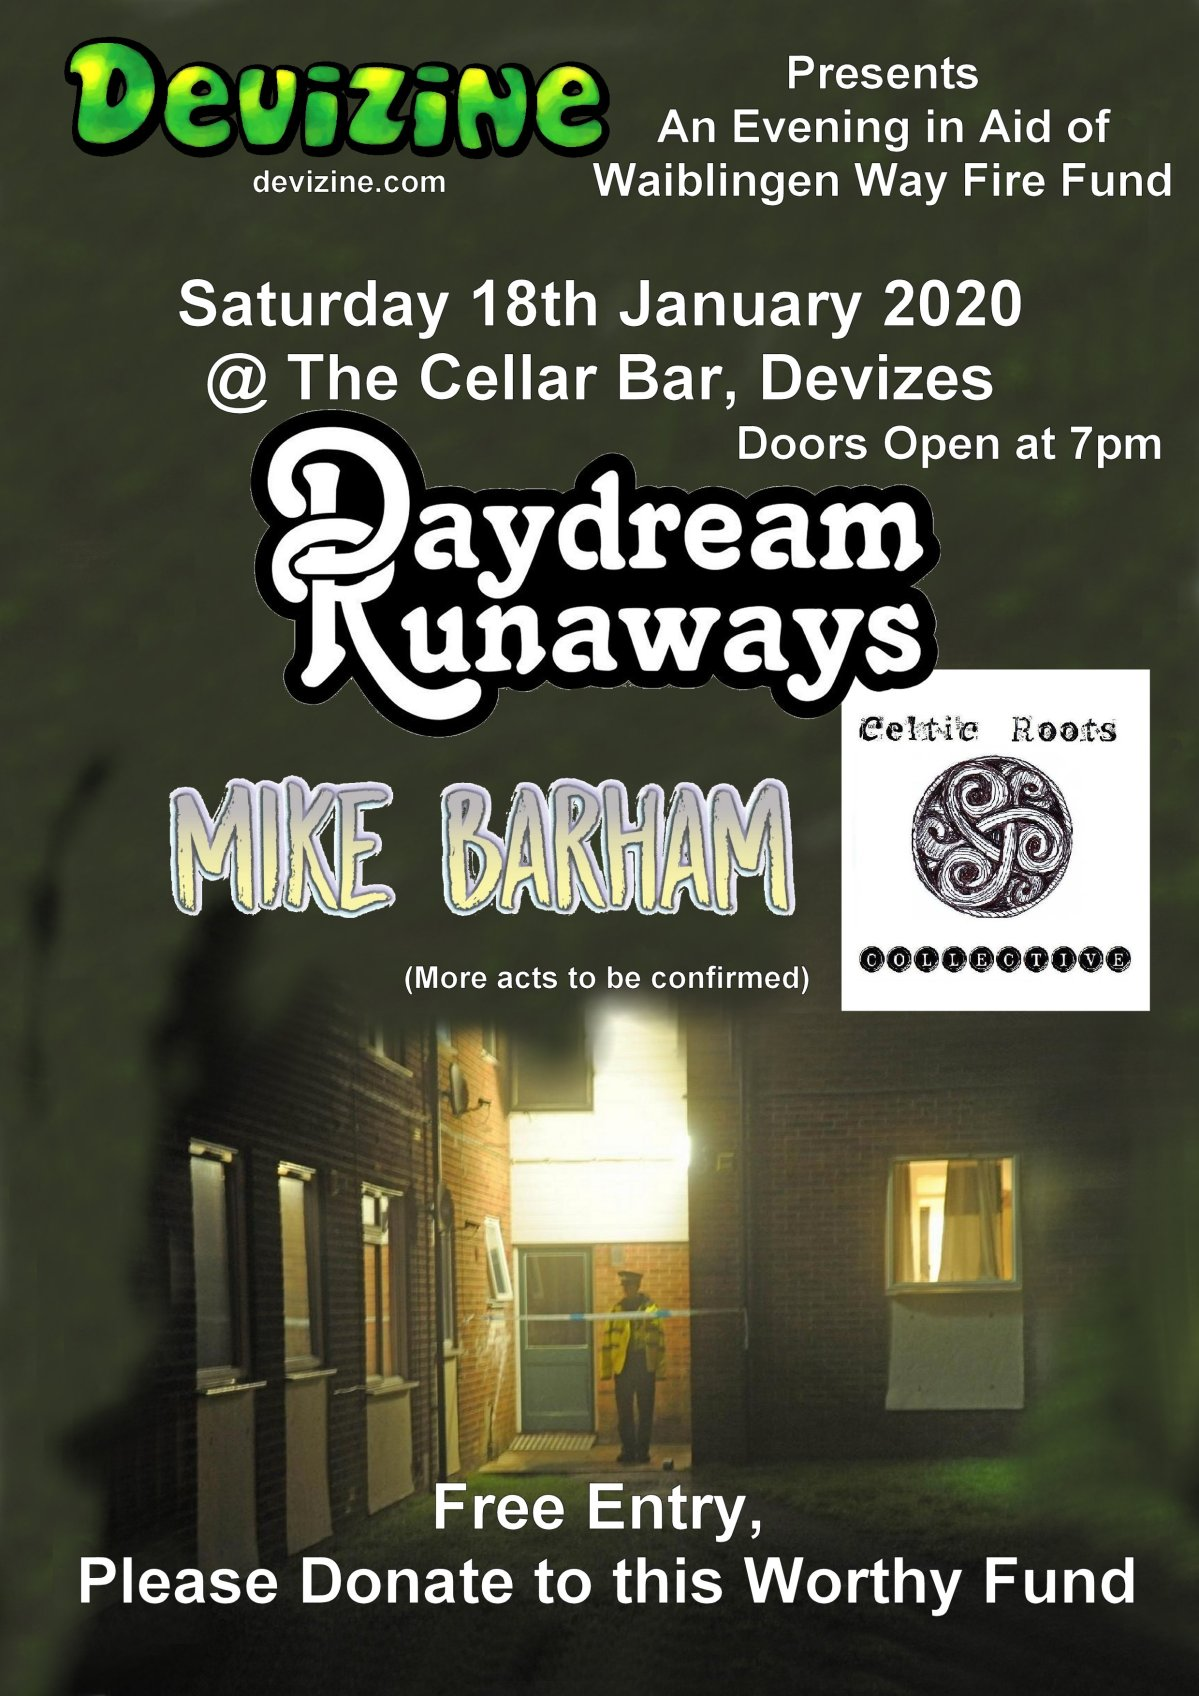 Devizine Presents Daydream Runaways, Mike Barham, the Celtic Roots Collective and a special guest in Aid of the Waiblingen Way FireFund